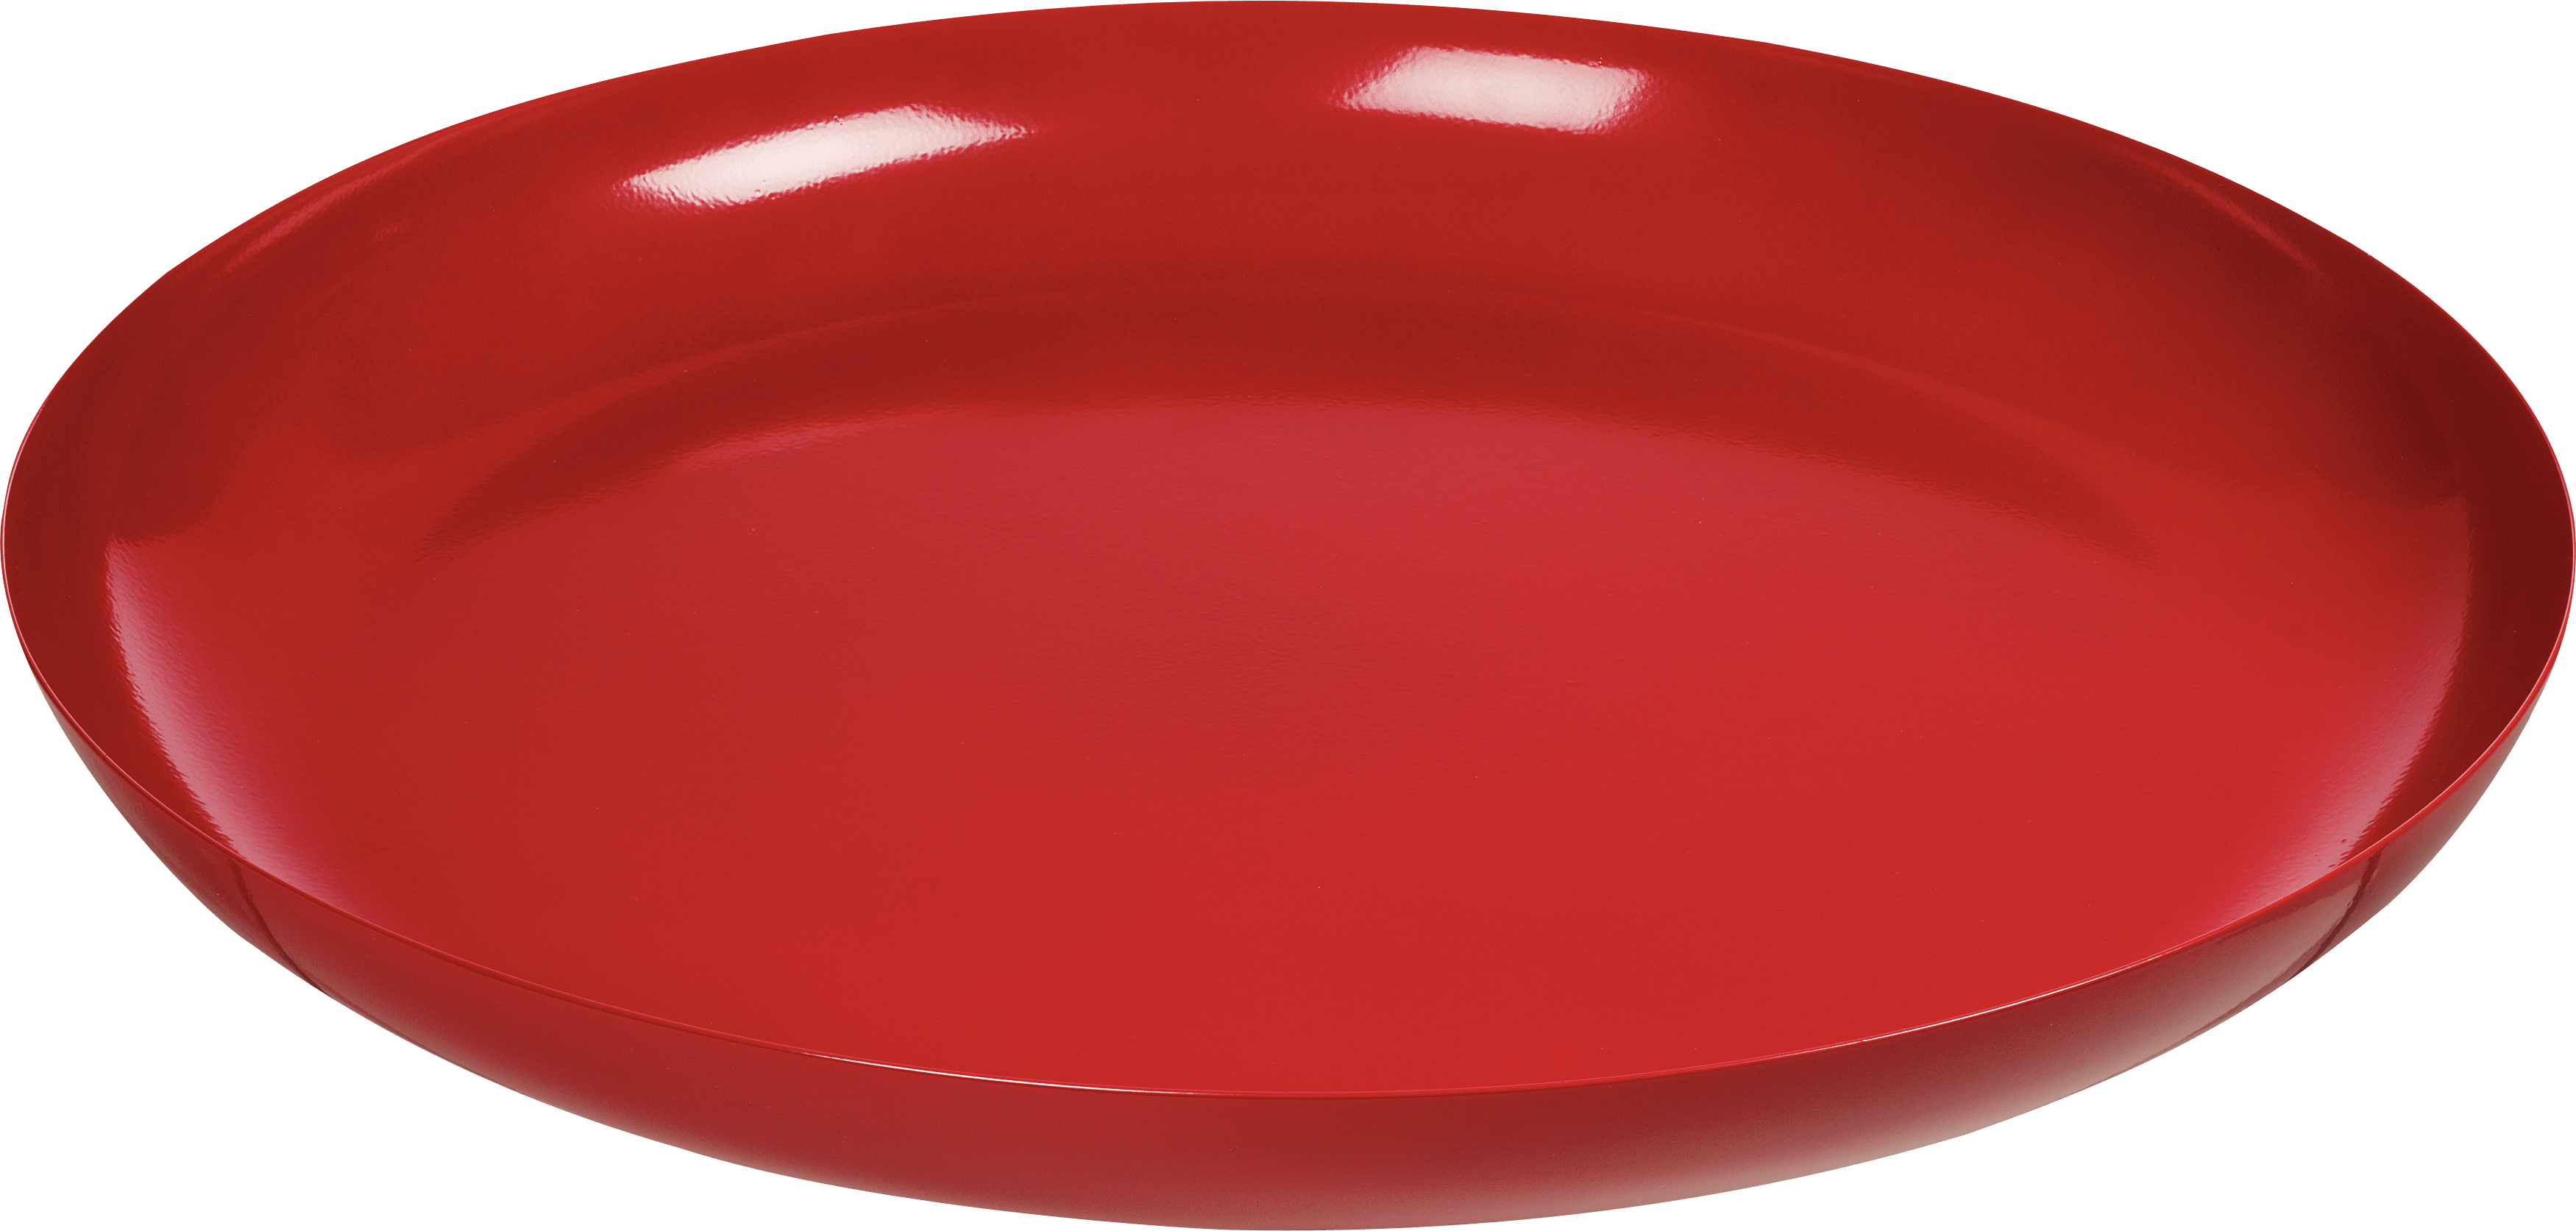 download red plate png image png image pngimg #15095